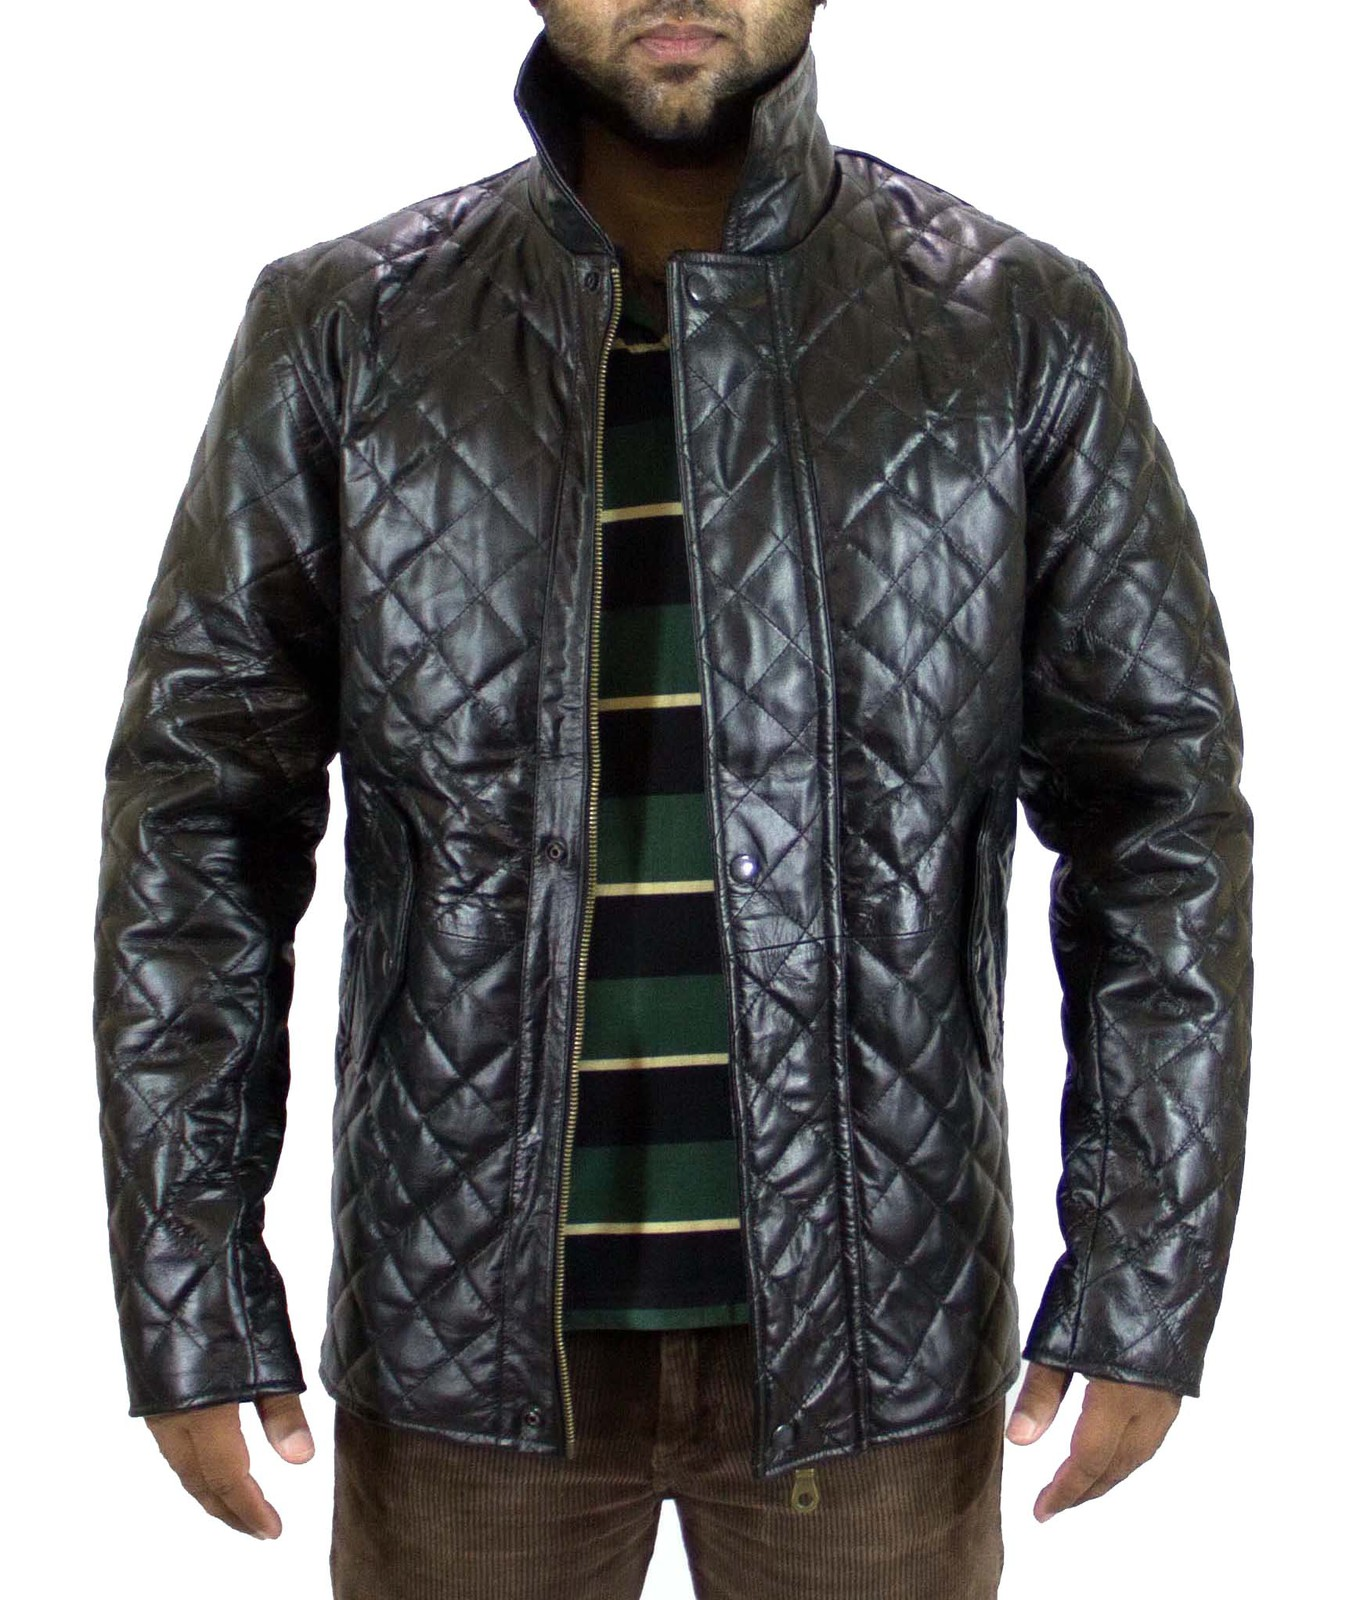 Custom made leather motorcycle jackets